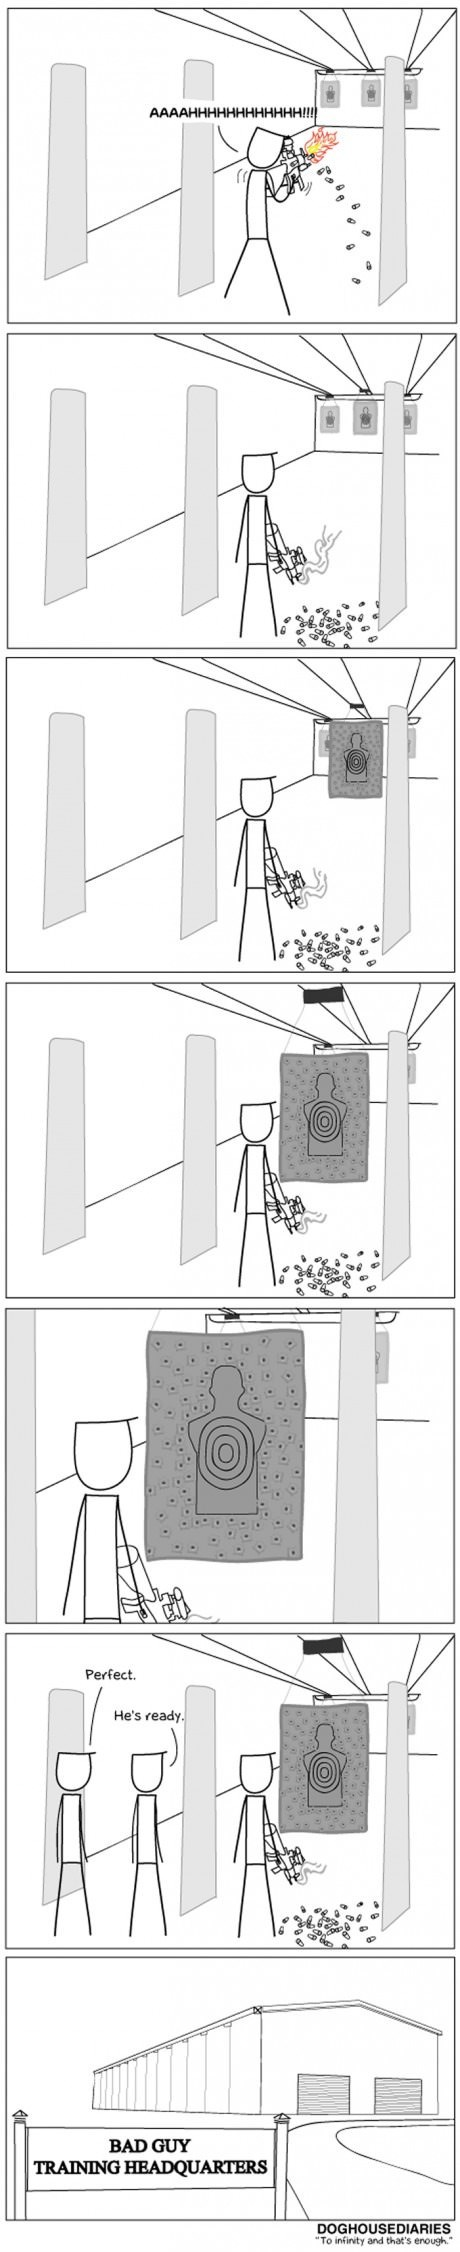 guns,bad guys,sad but true,web comics